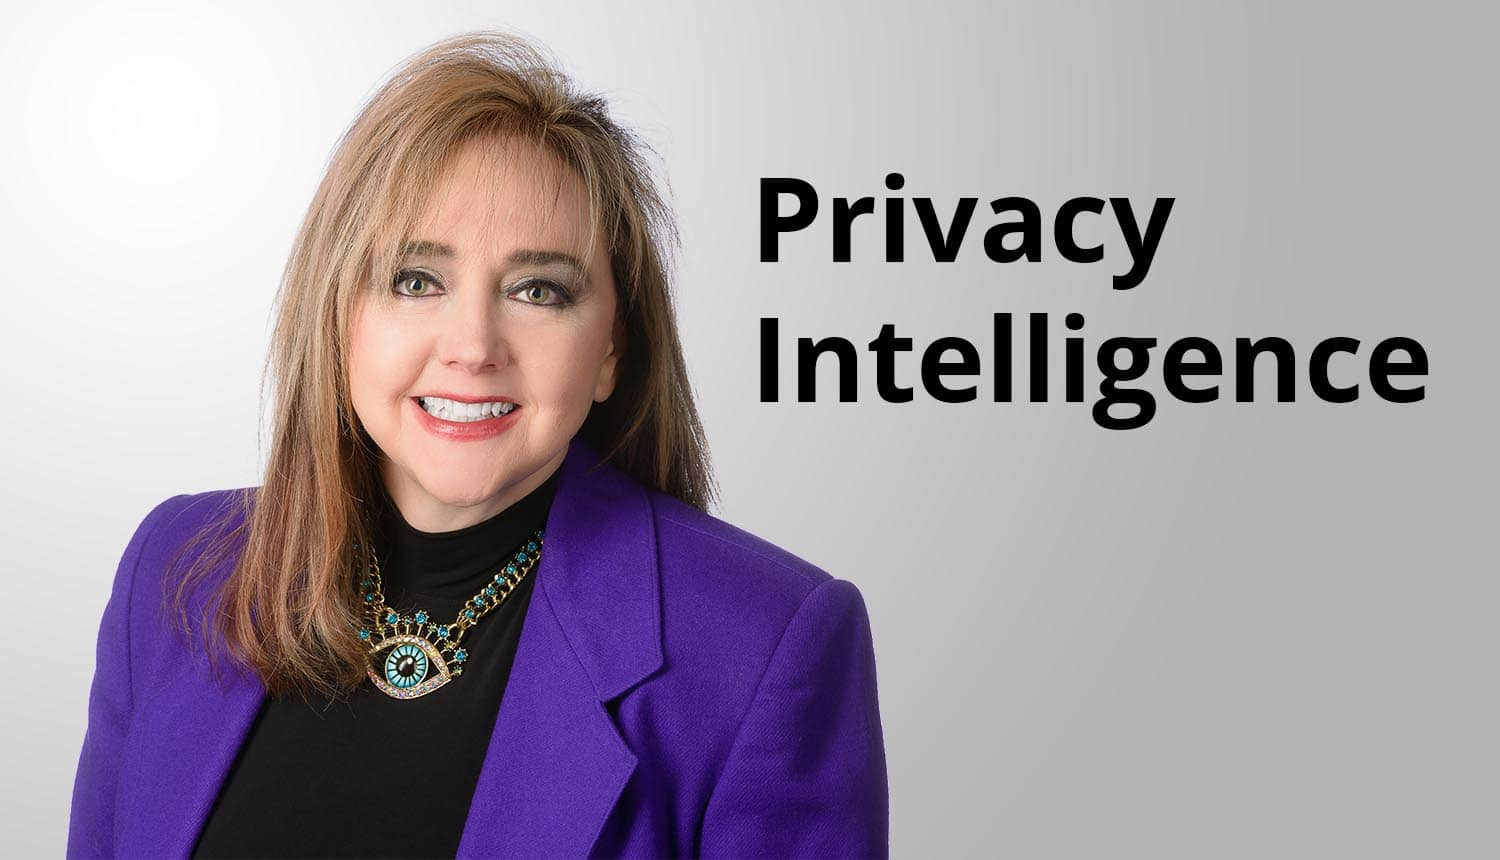 Privacy Intelligence by Rebecca Herold